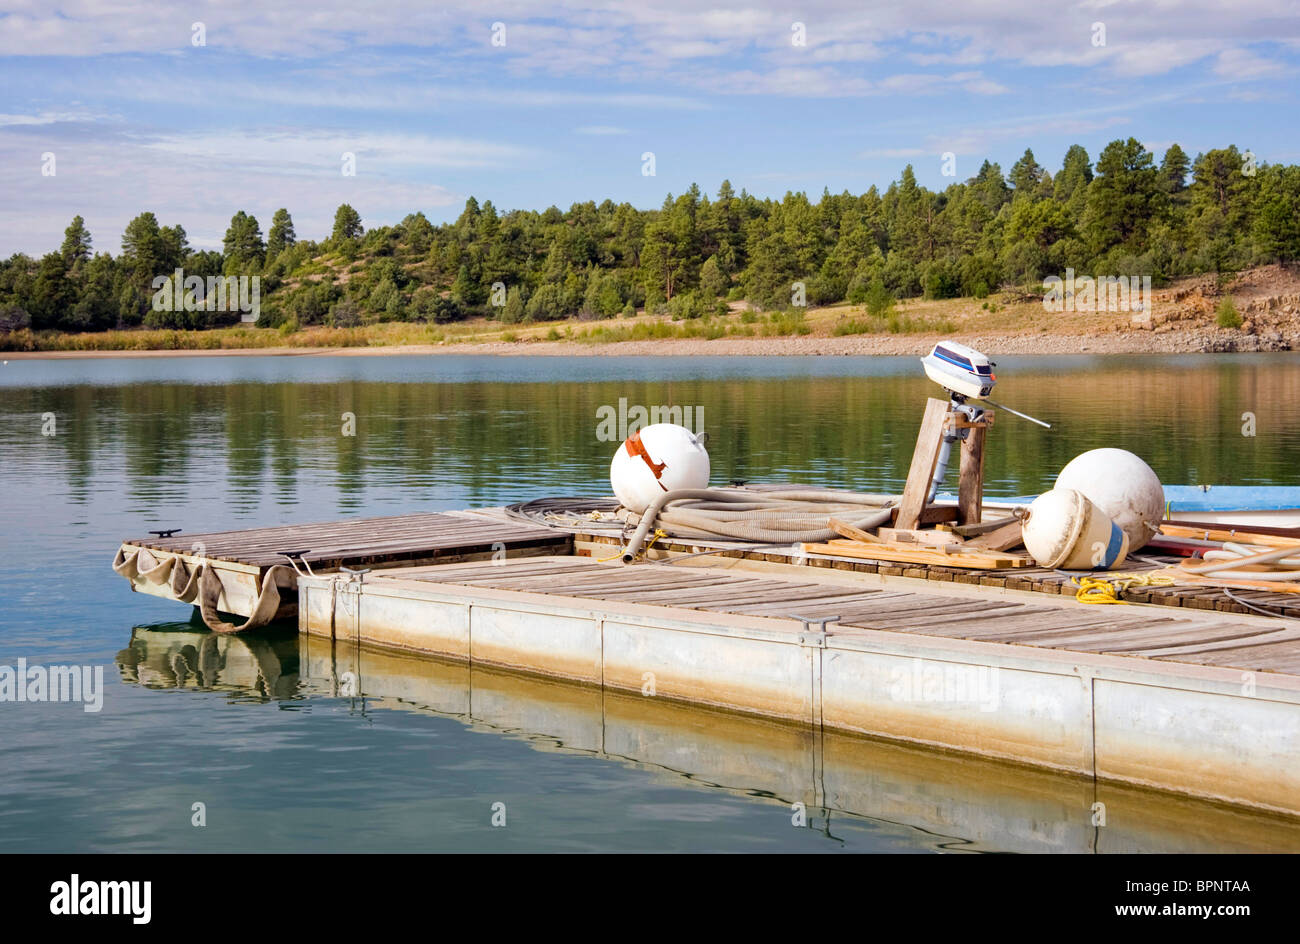 Dock Floats On Lake In Stock Photos & Dock Floats On Lake In Stock